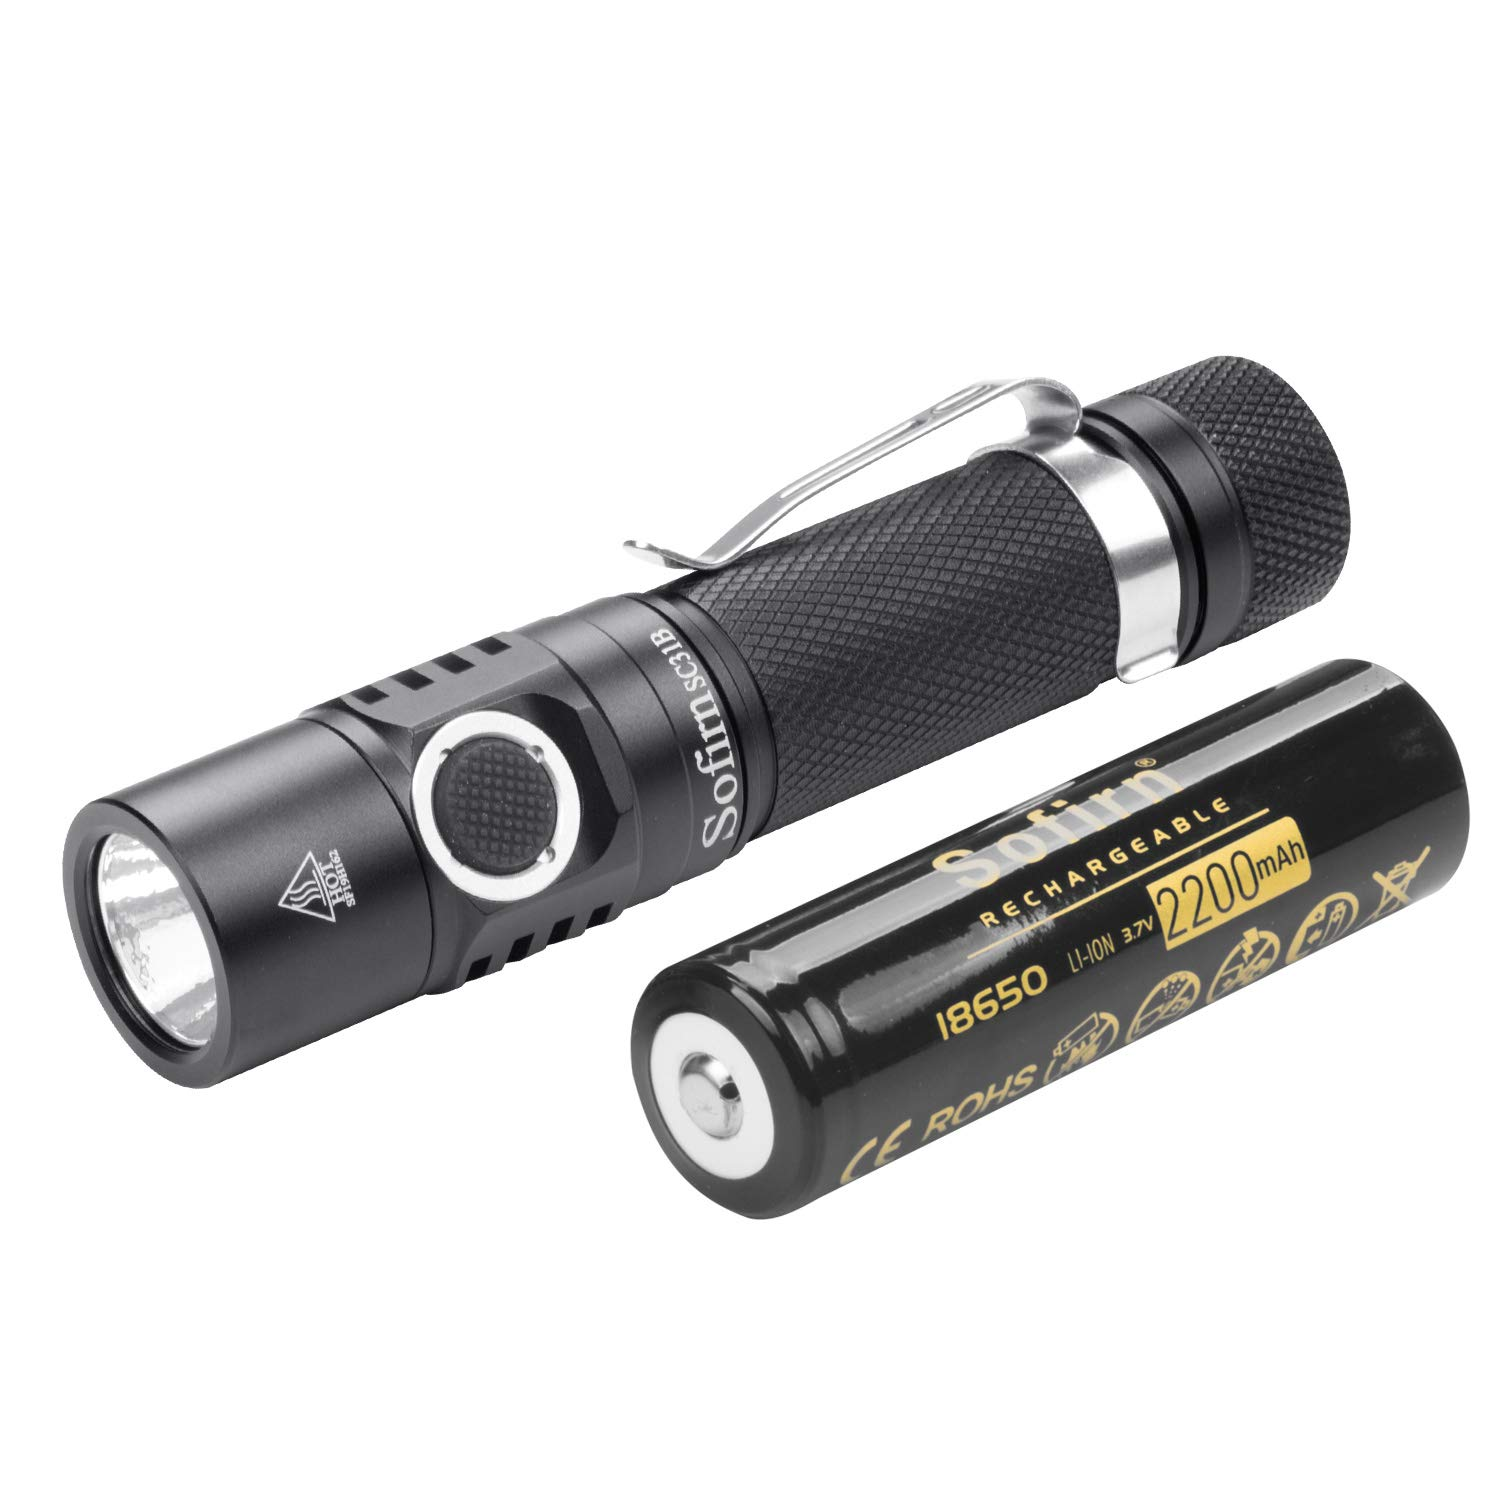 Sofirn 1000 Lumens Rechargeable LED Flashlight 18650 Battery Included, Super Bright EDC Pocket Light High Lumens, 5 Modes for Camping Hiking, SC31B